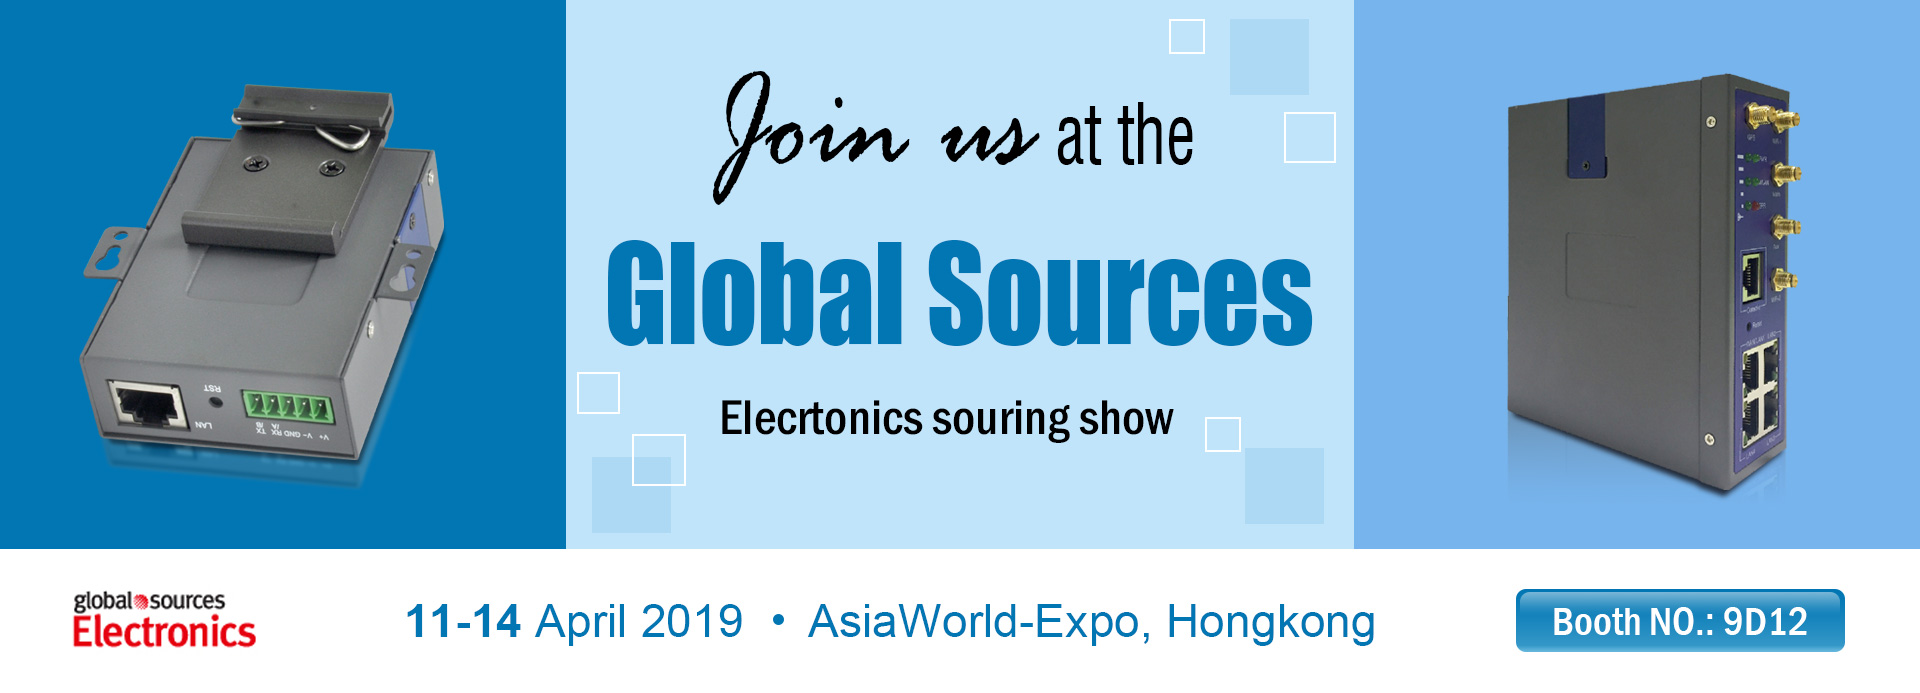 Global Sources Electronics Souring show